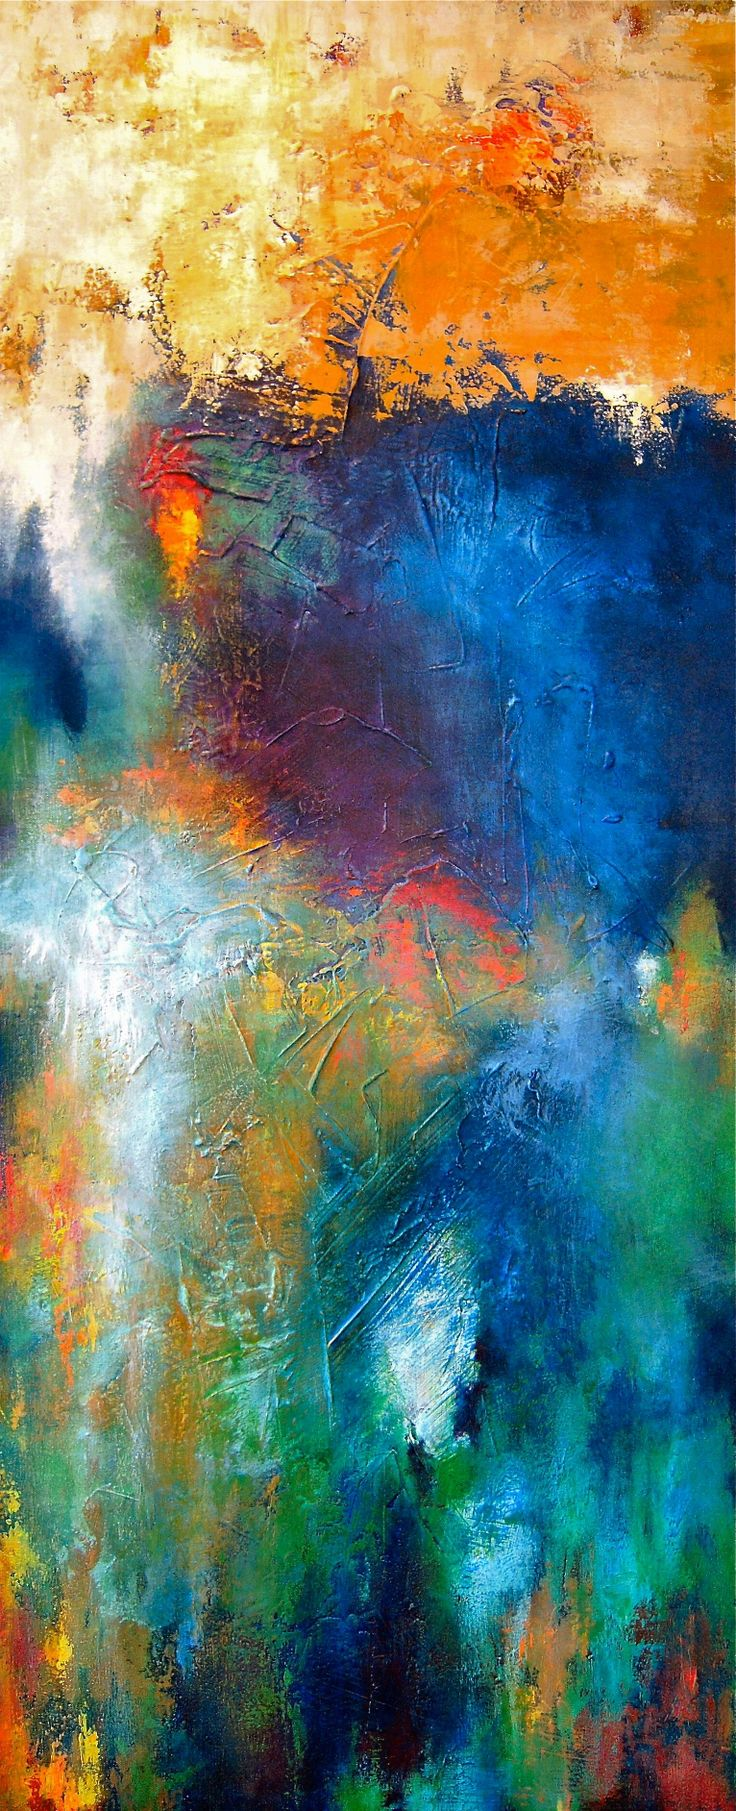 907 best obsessed with textured art images on pinterest for Textured acrylic abstract paintings